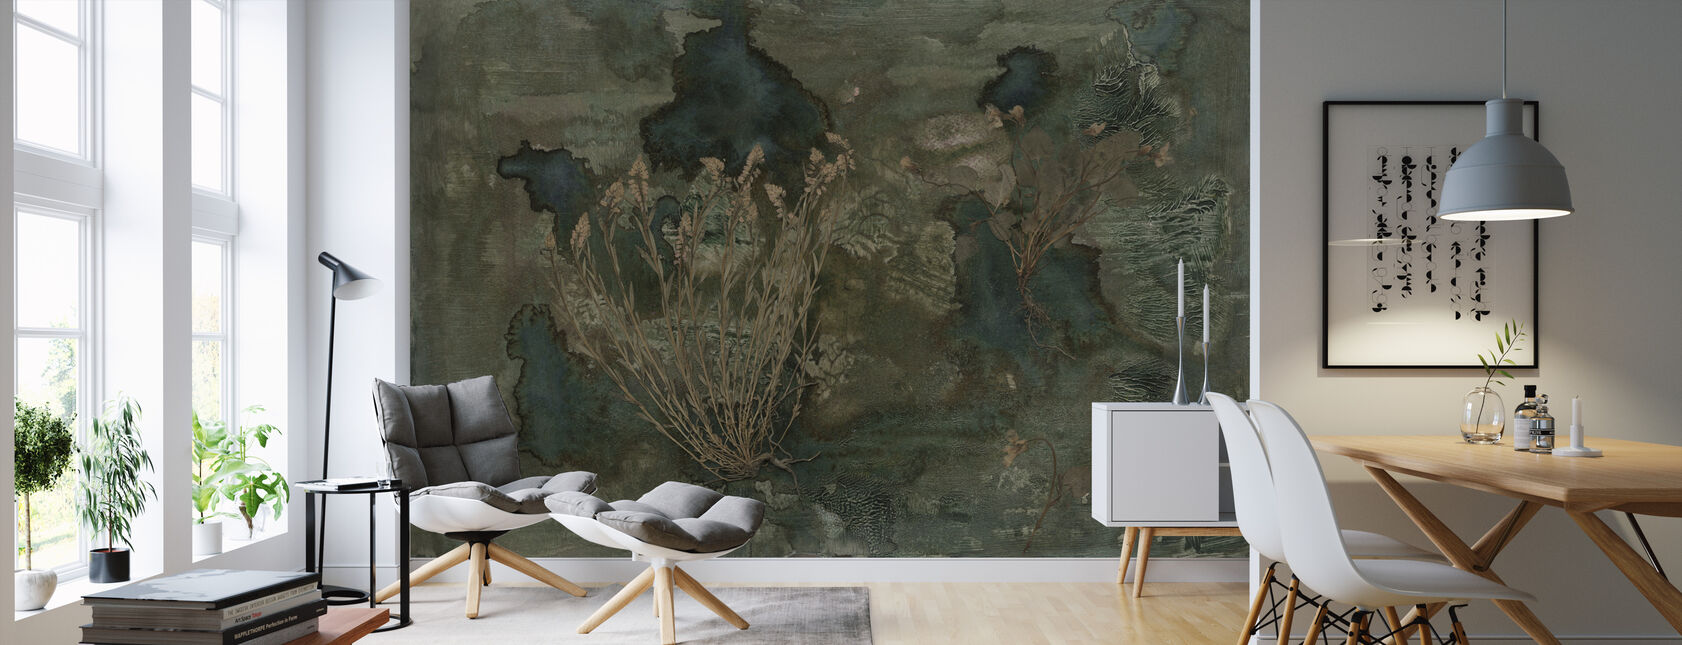 Flora Hysterica 4 - Wallpaper - Living Room